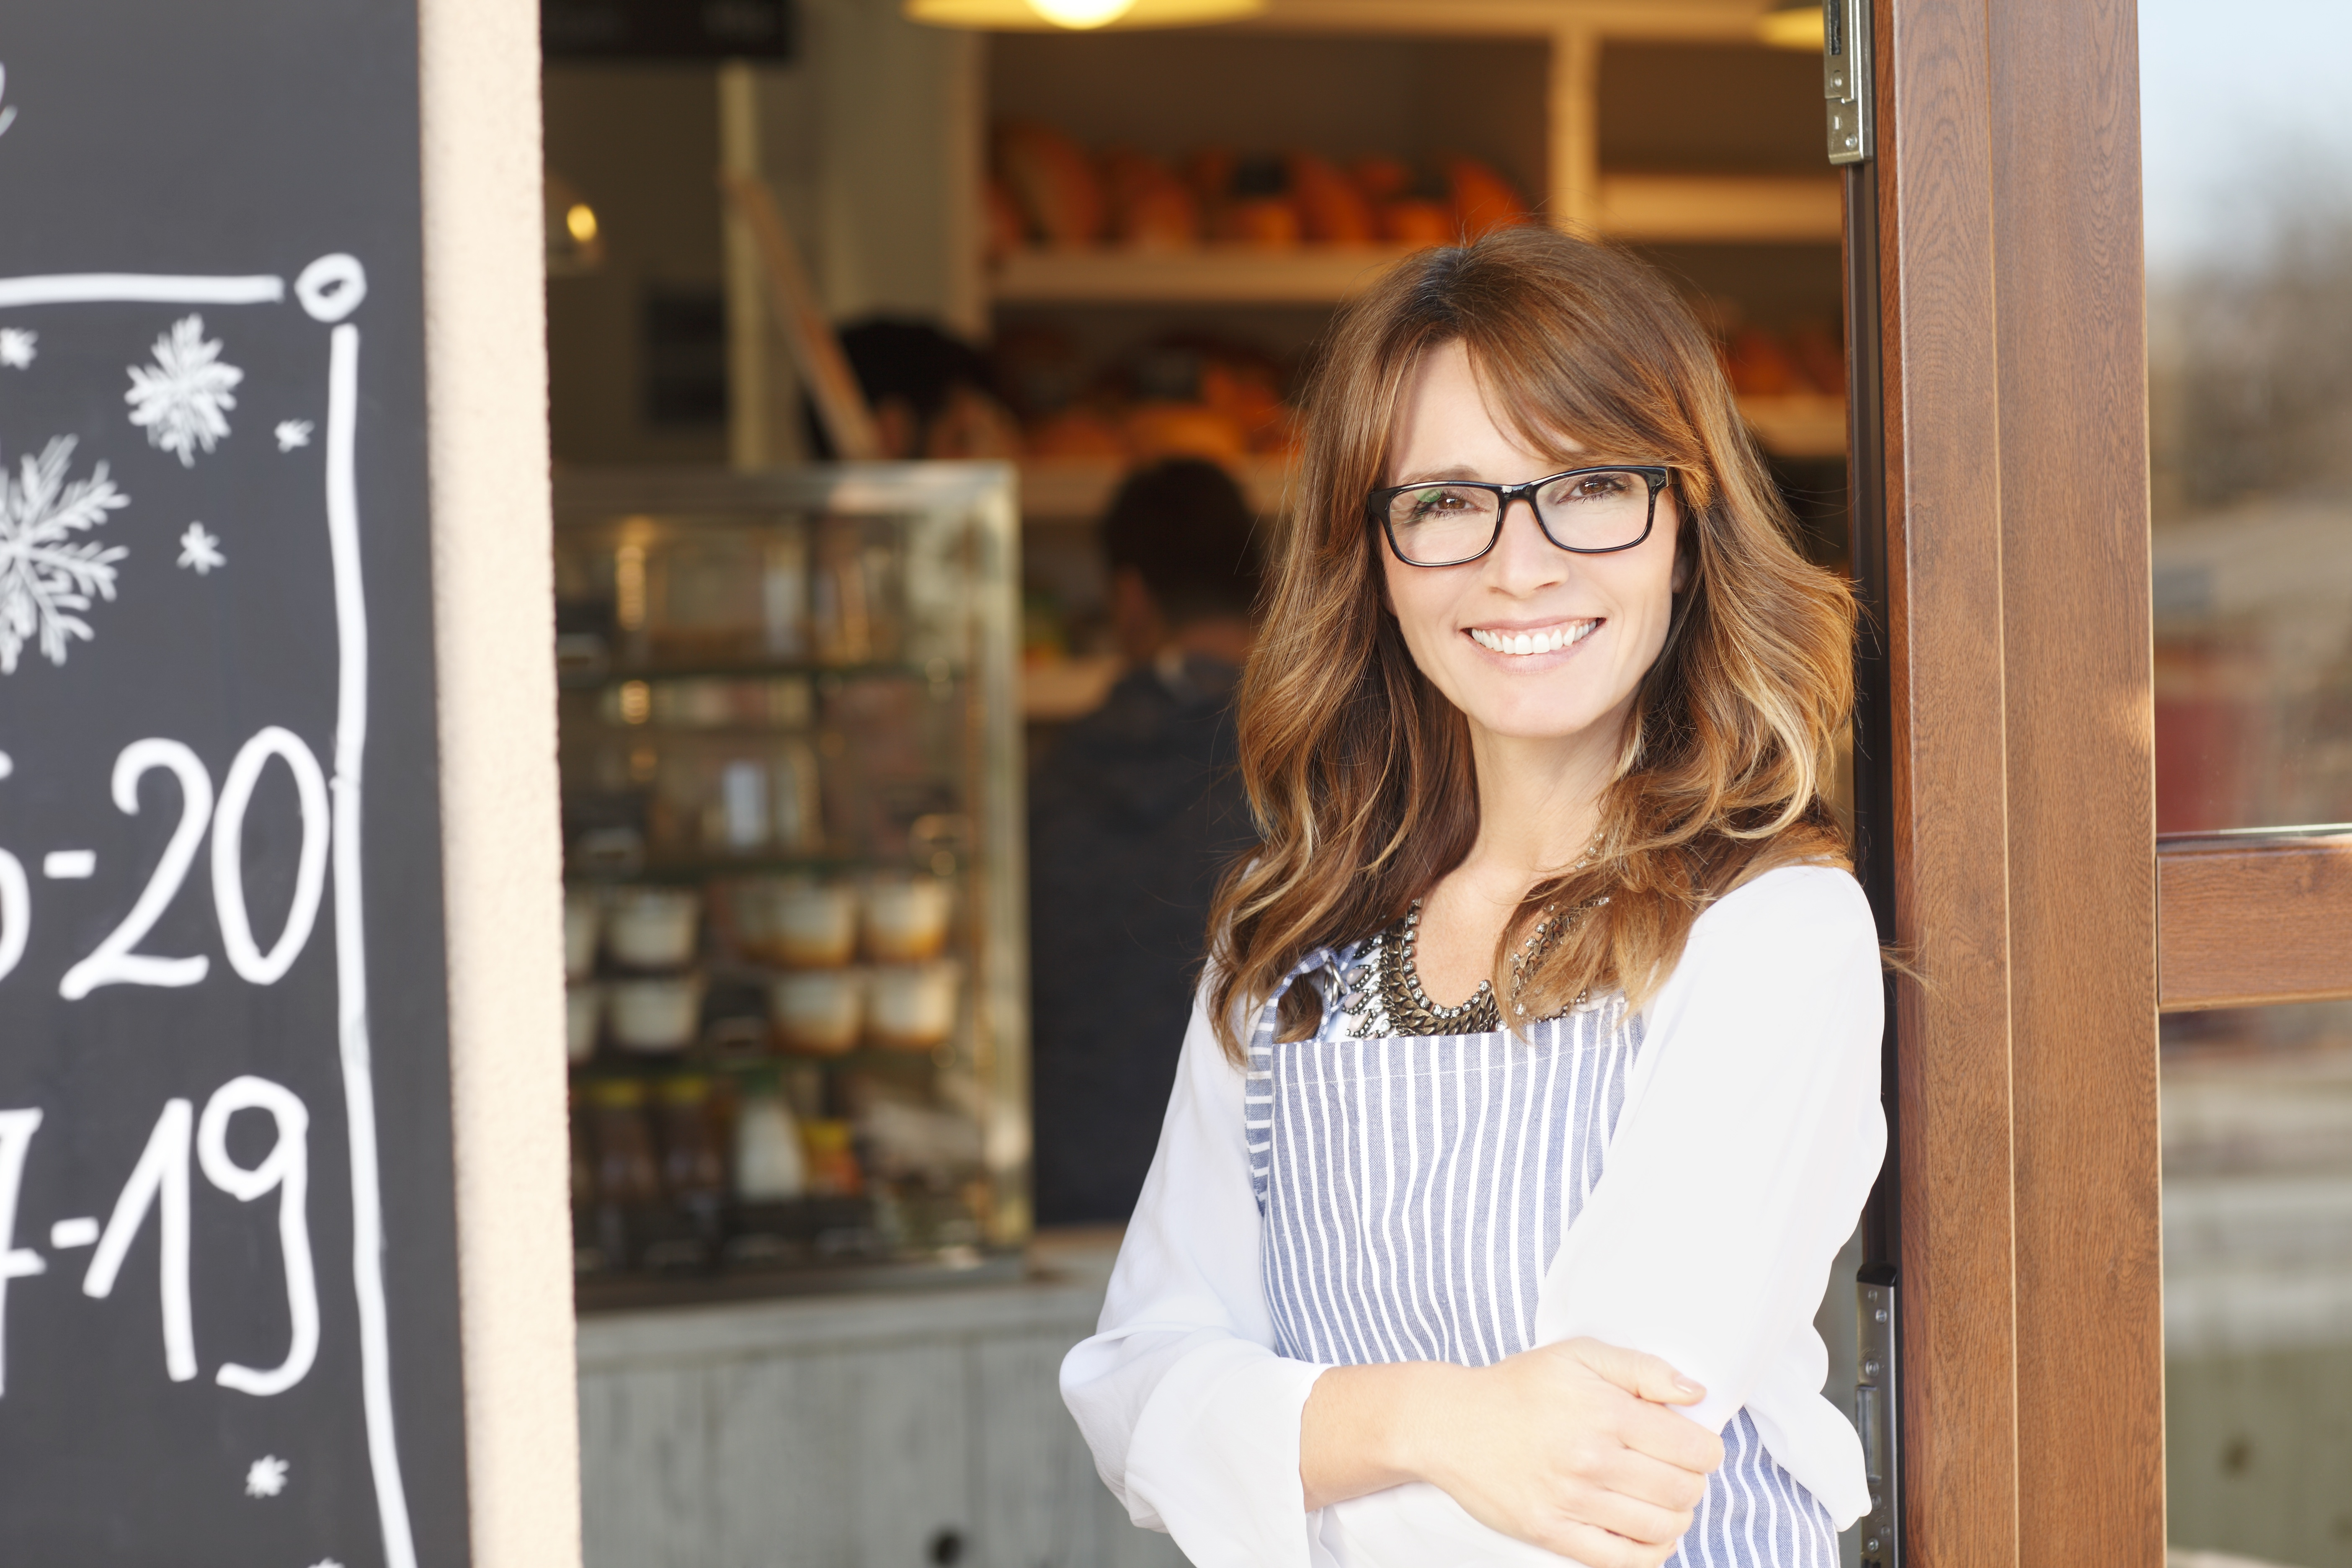 Small Business owner outside of her shop